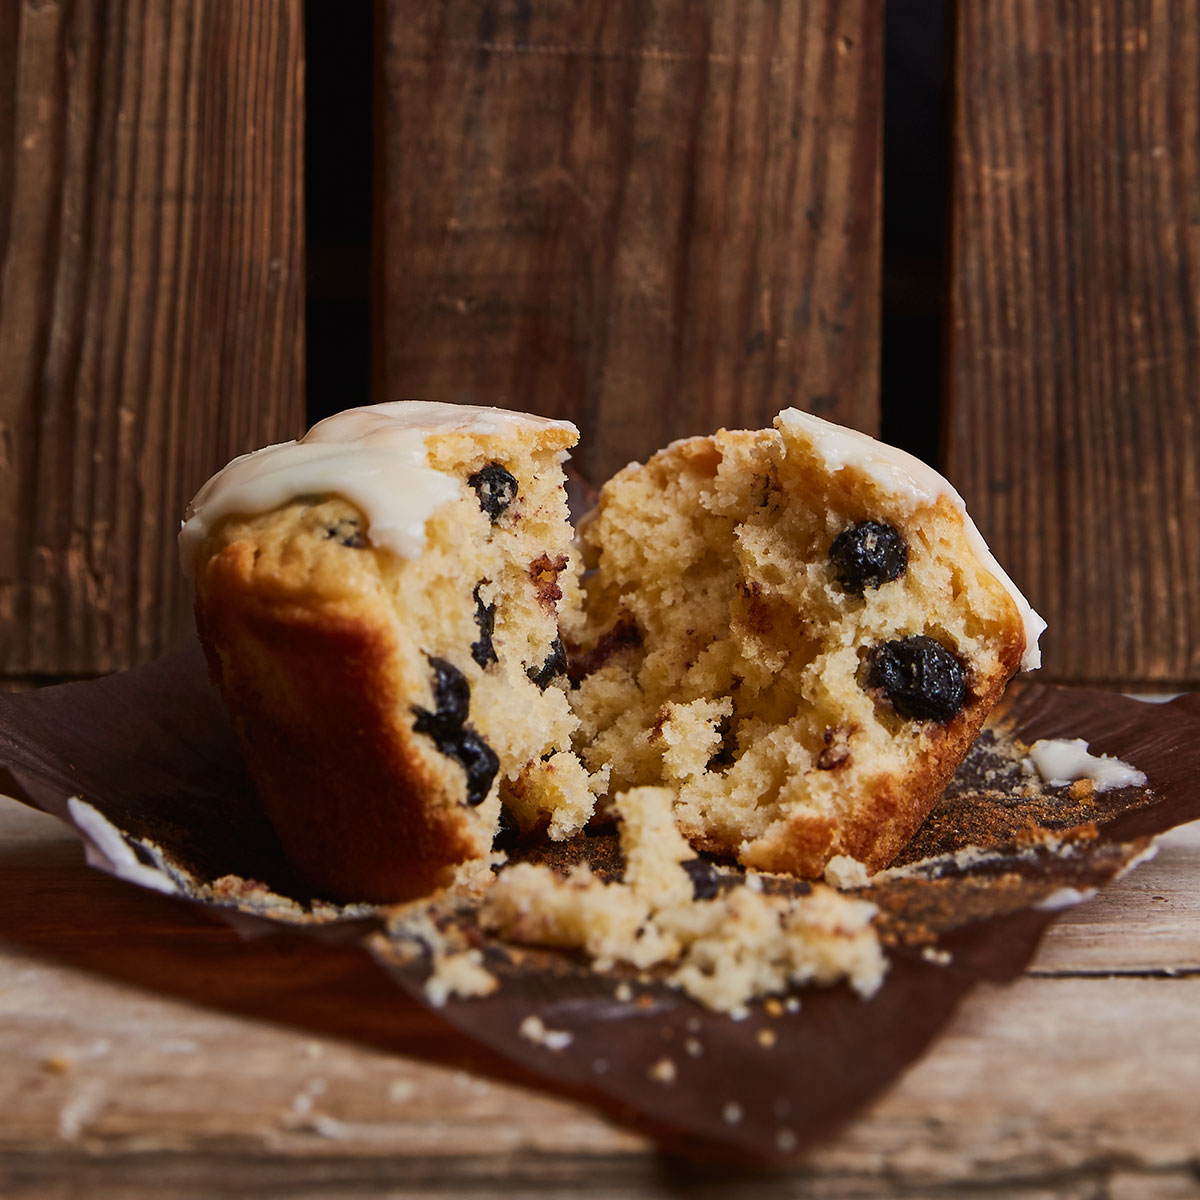 Orange Blueberry Muffin